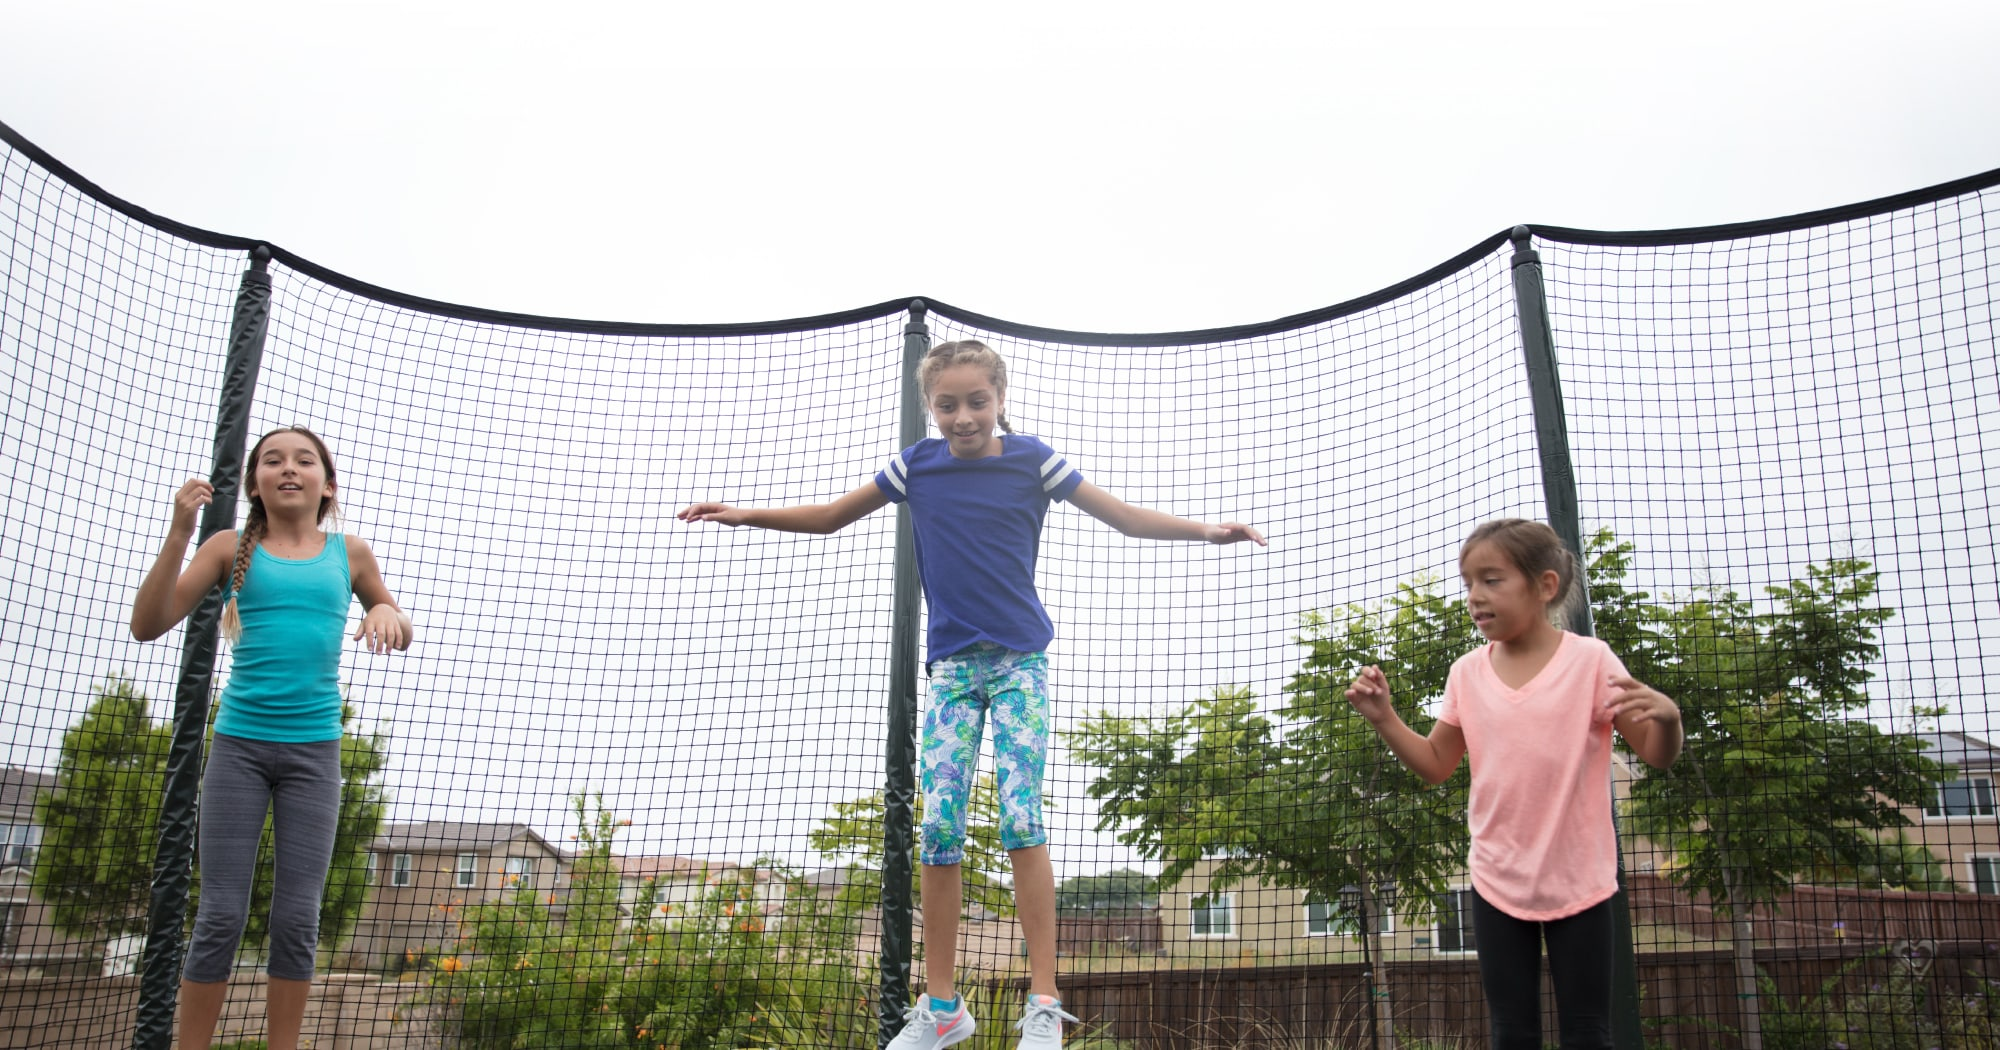 Girls jumping on a backyard trampoline